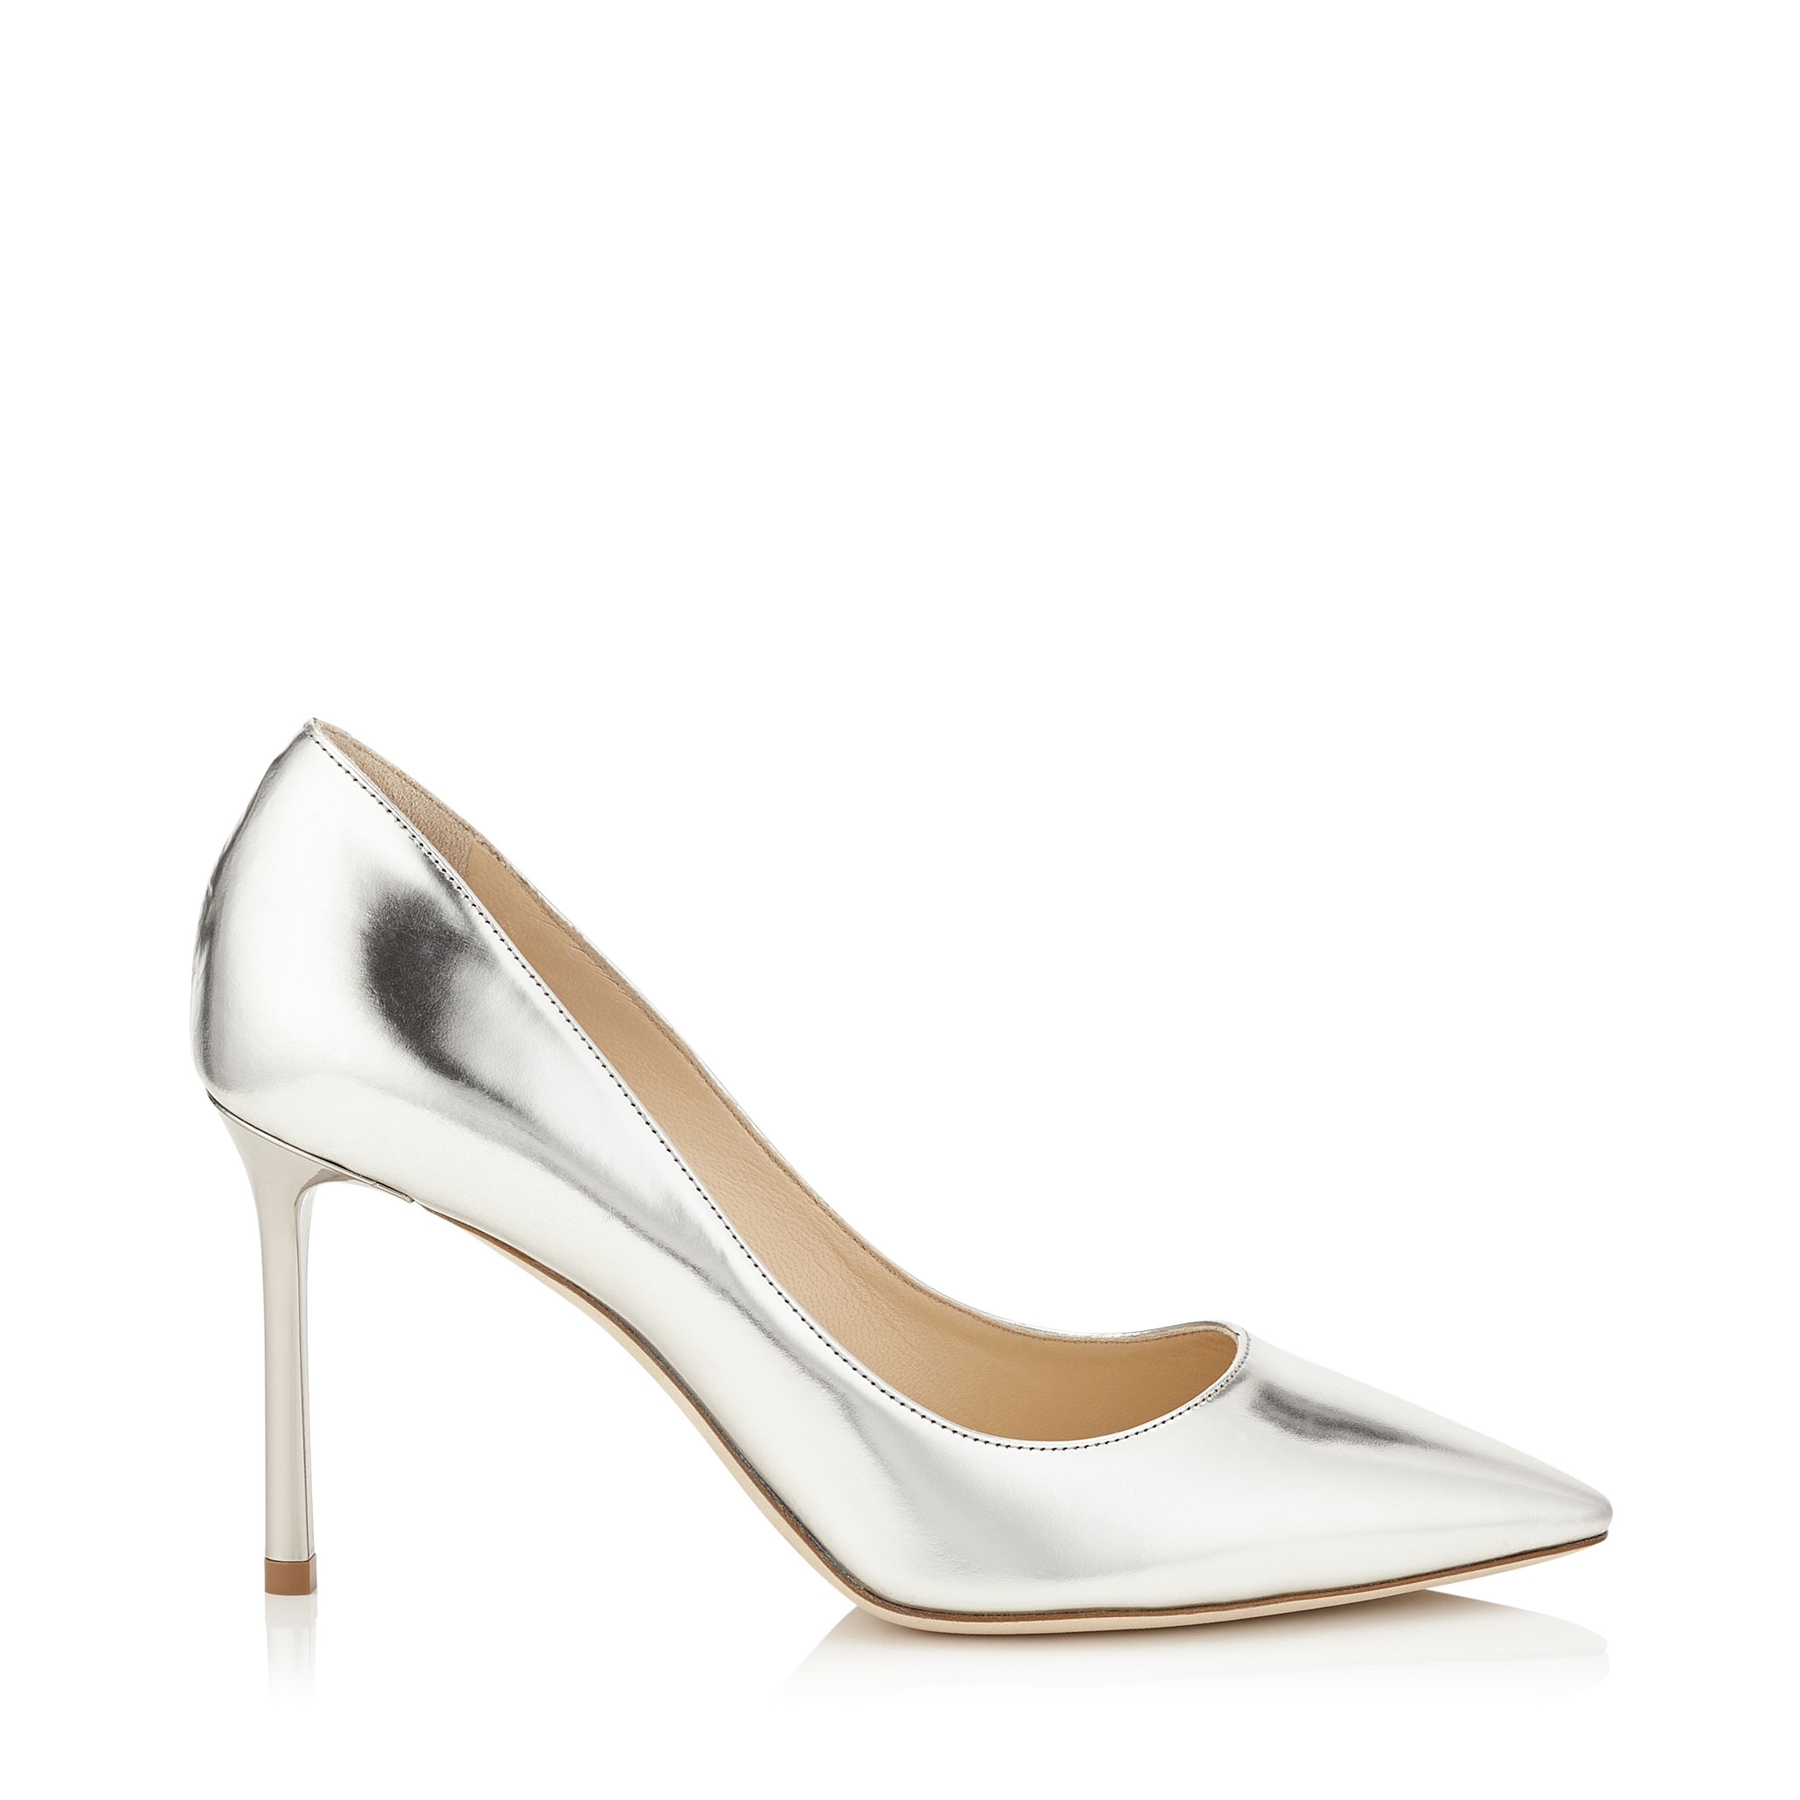 ROMY 85 Silver Mirror Leather Pointy Toe Pumps